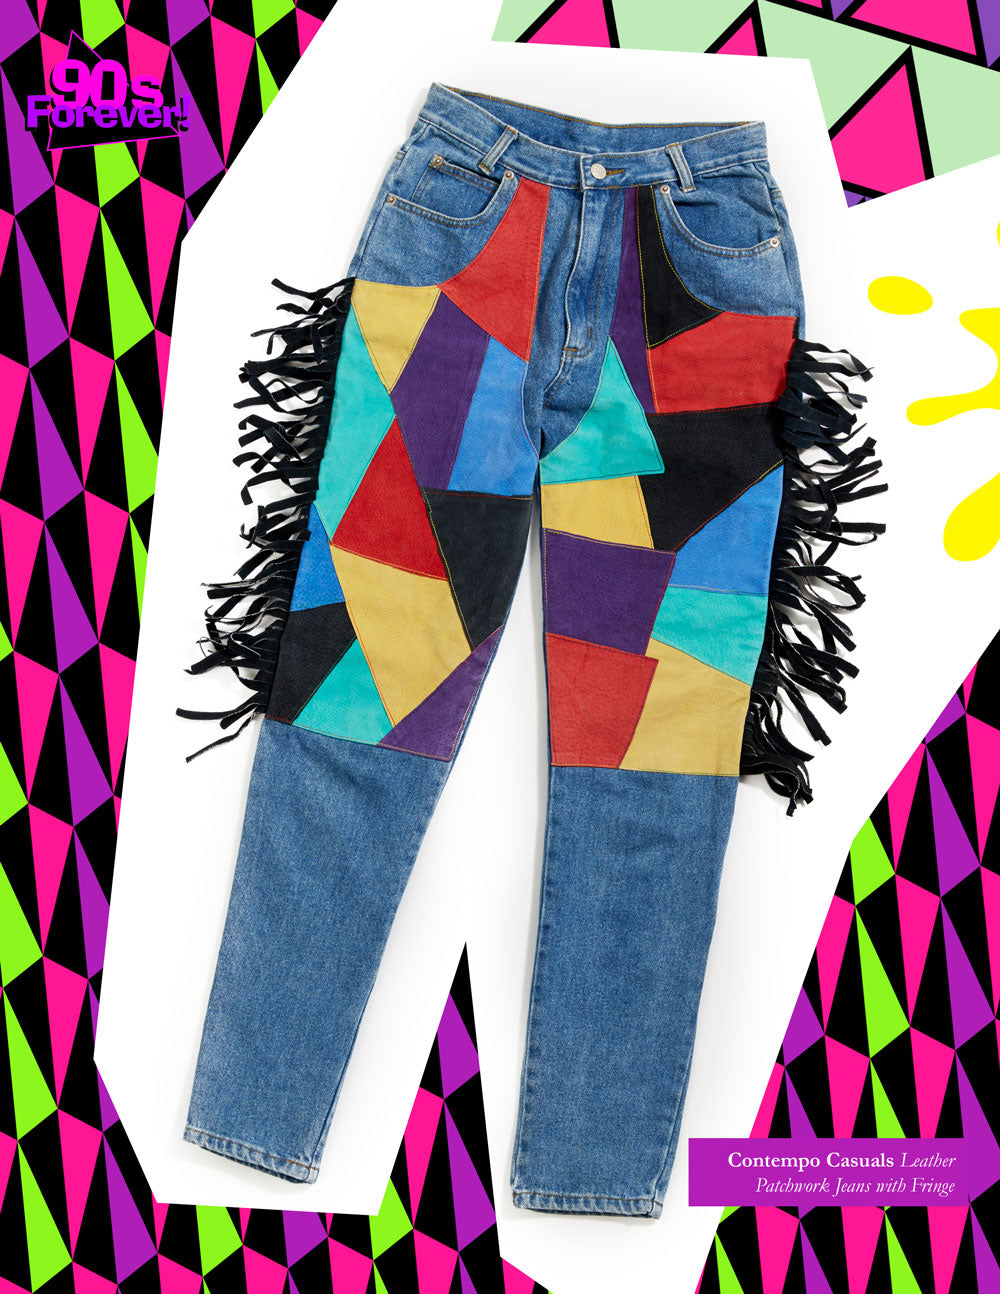 90s Forever Retro Vintage Fashion Apparel Lookbook - Contempo Casuals Leather Patchwork Jeans with Fringe